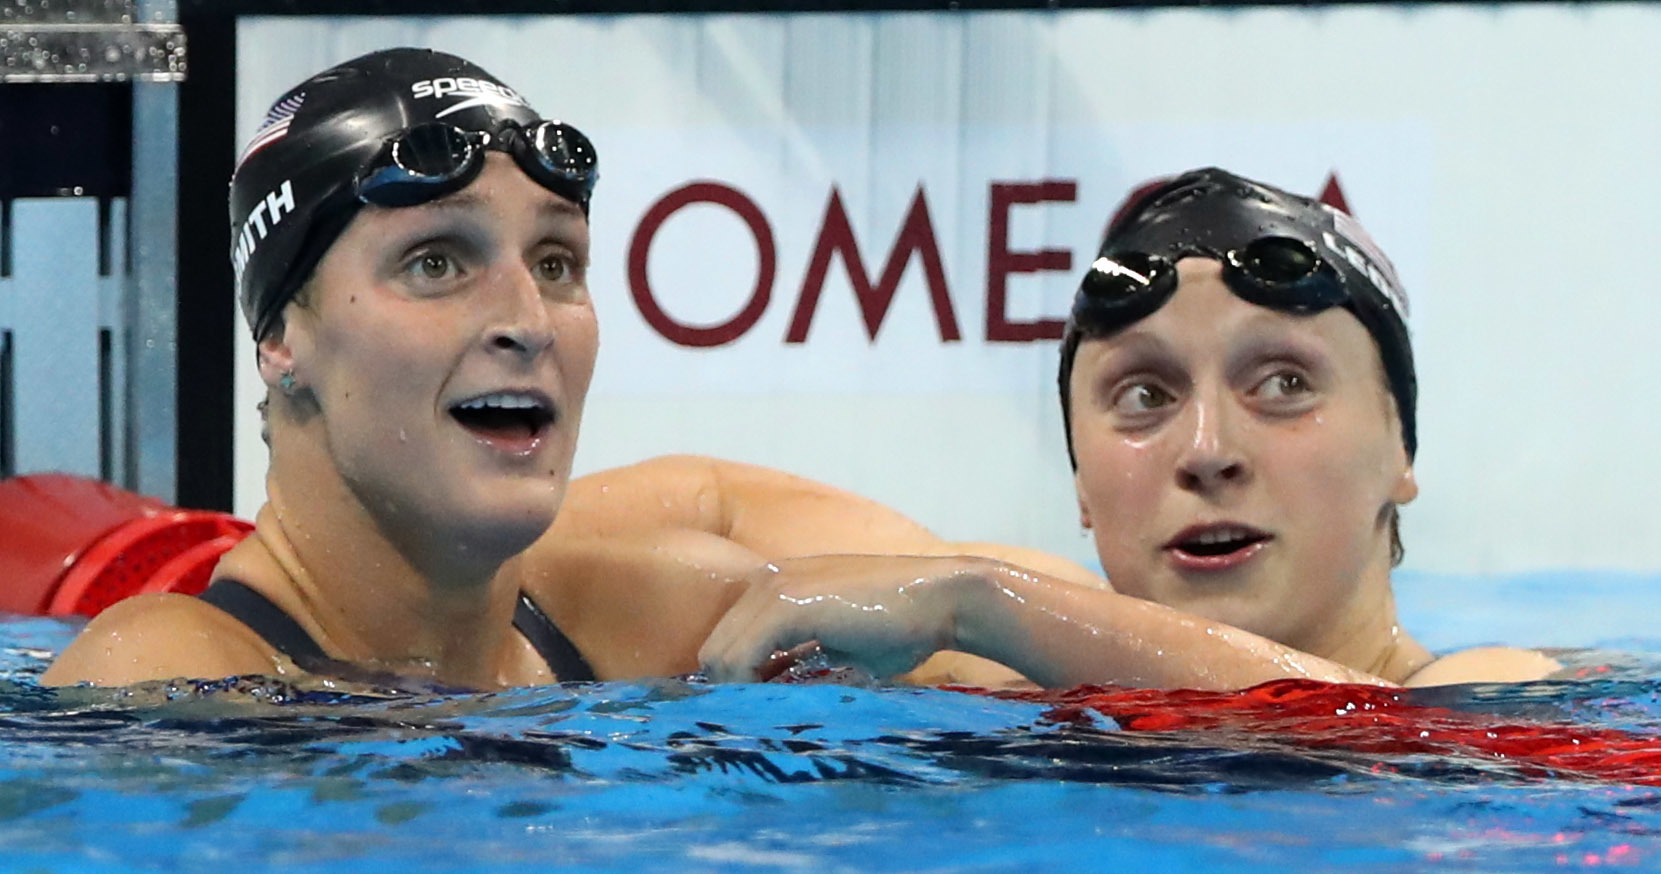 United States' Katie Ledecky, right, looks up with United States' Leah Smith after winning the gold medal in the women's 400-meter freestyle setting a new world record during the swimming competitions at the 2016 Summer Olympics, Sunday, Aug. 7, 2016, in Rio de Janeiro, Brazil. (AP Photo/Lee Jin-man)